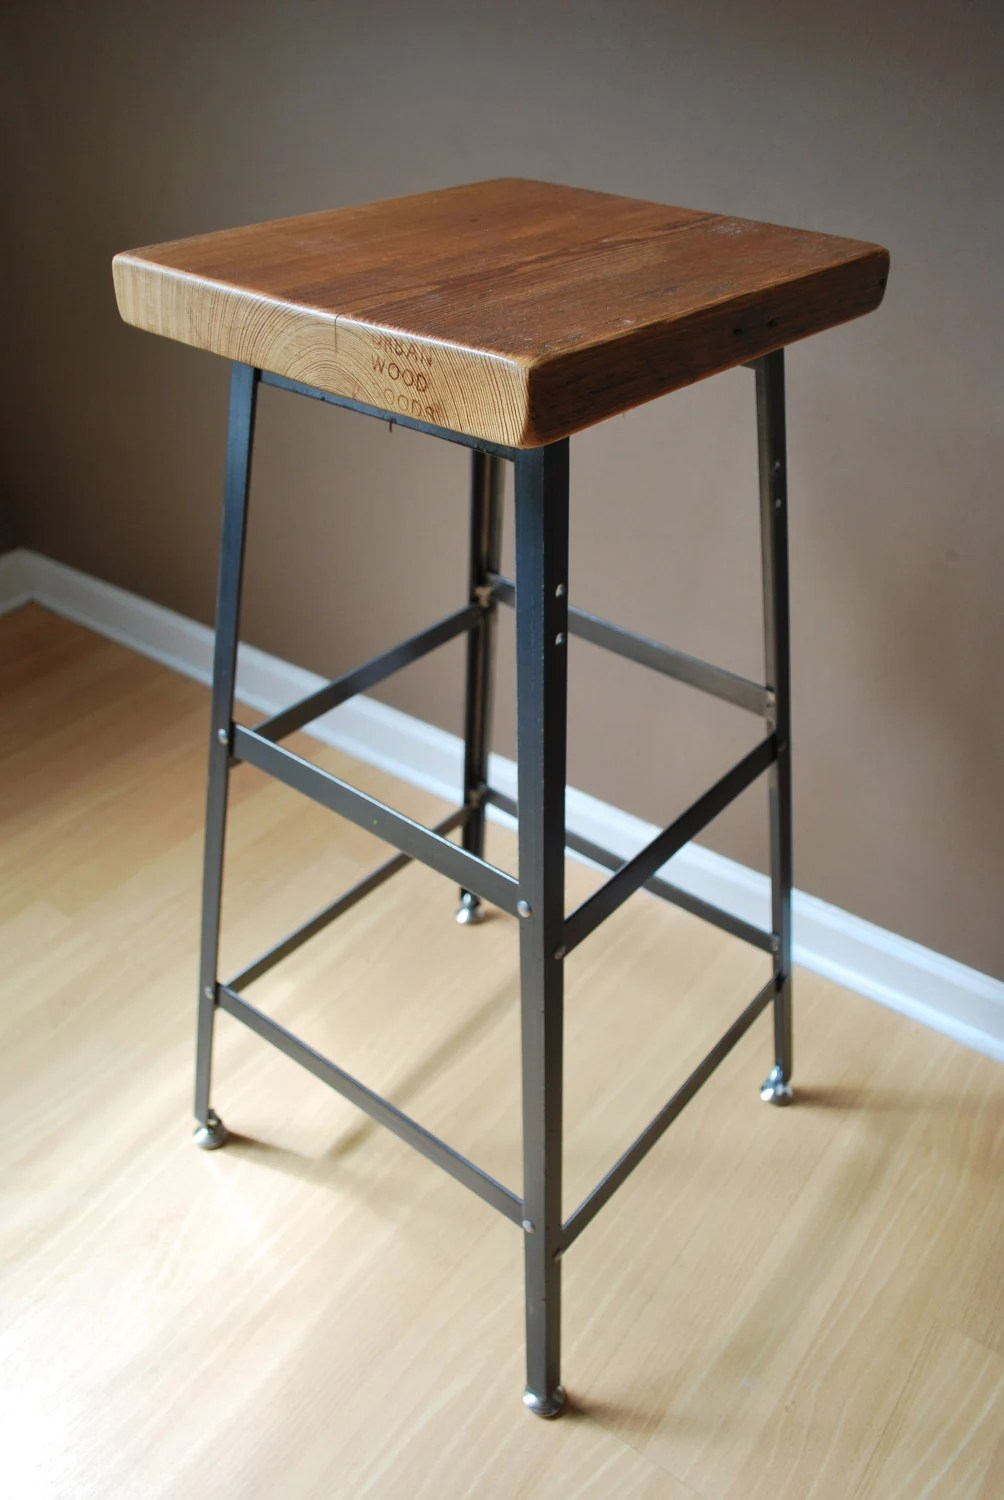 "Reclaimed Wood and steel industrial shop Stool. made in chicago 25"" counter height"